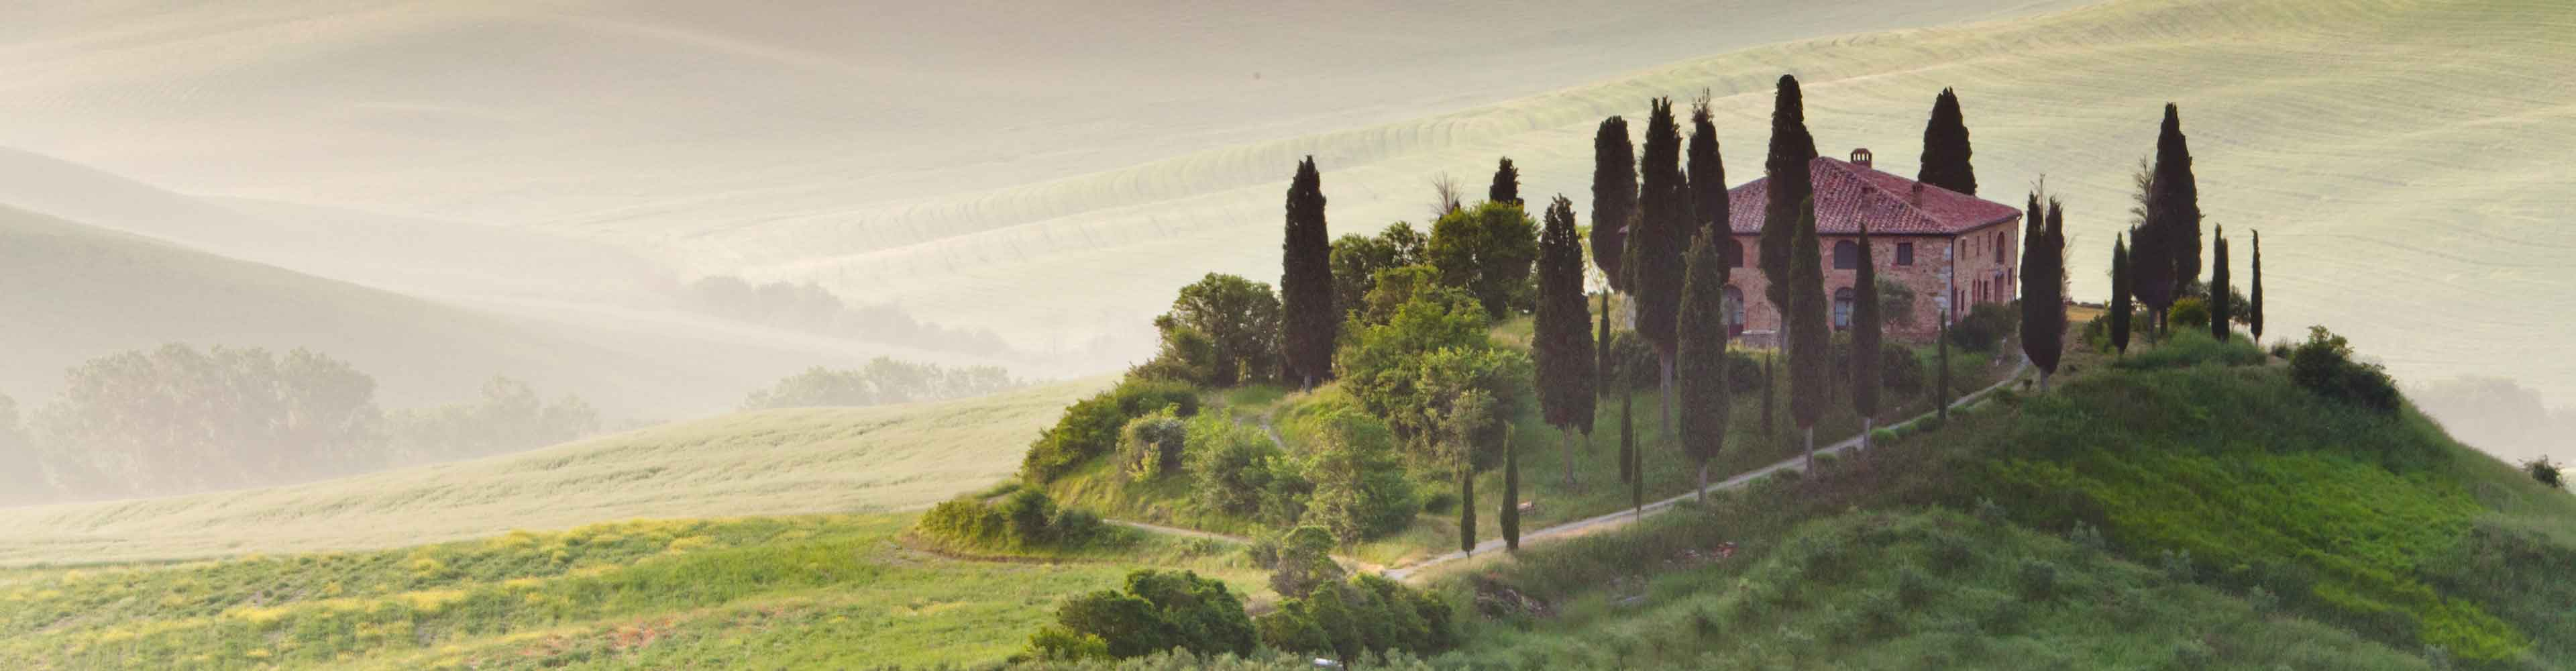 Walking in Tuscany